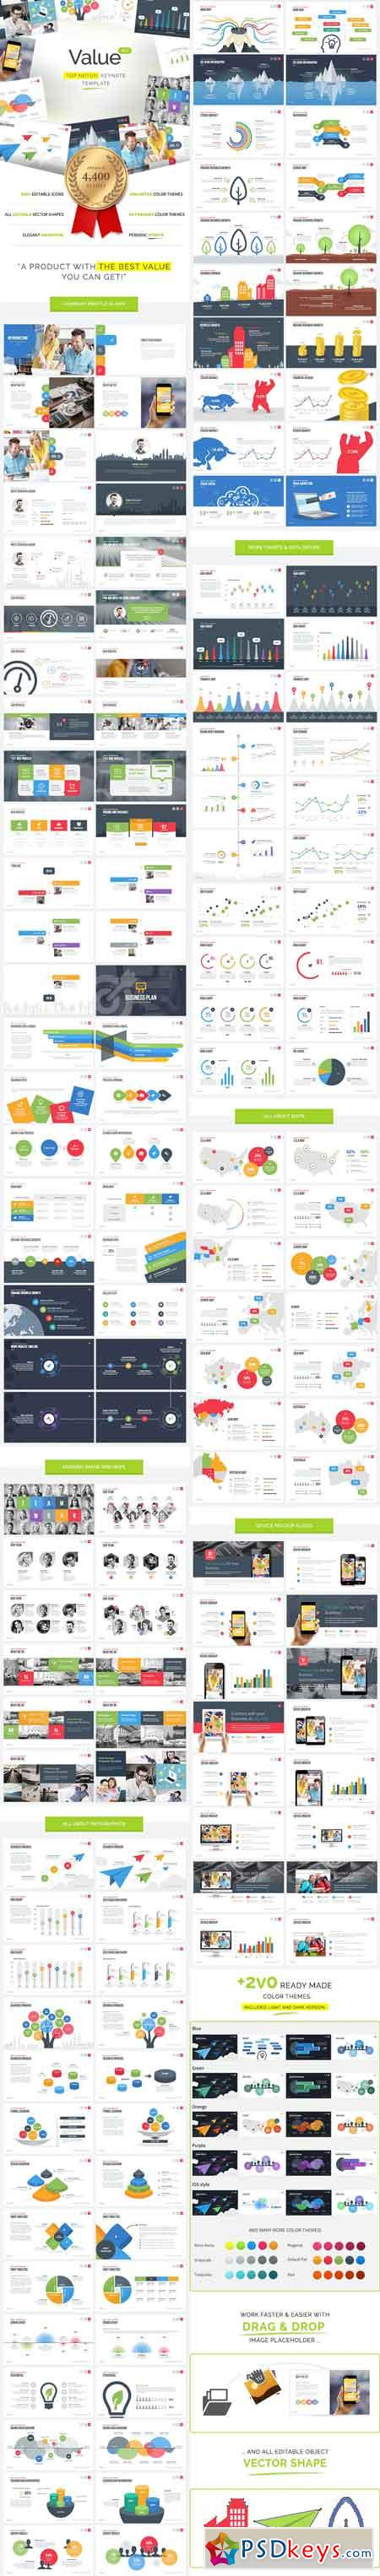 Value - Ultimate Powerpoint Template 10205623